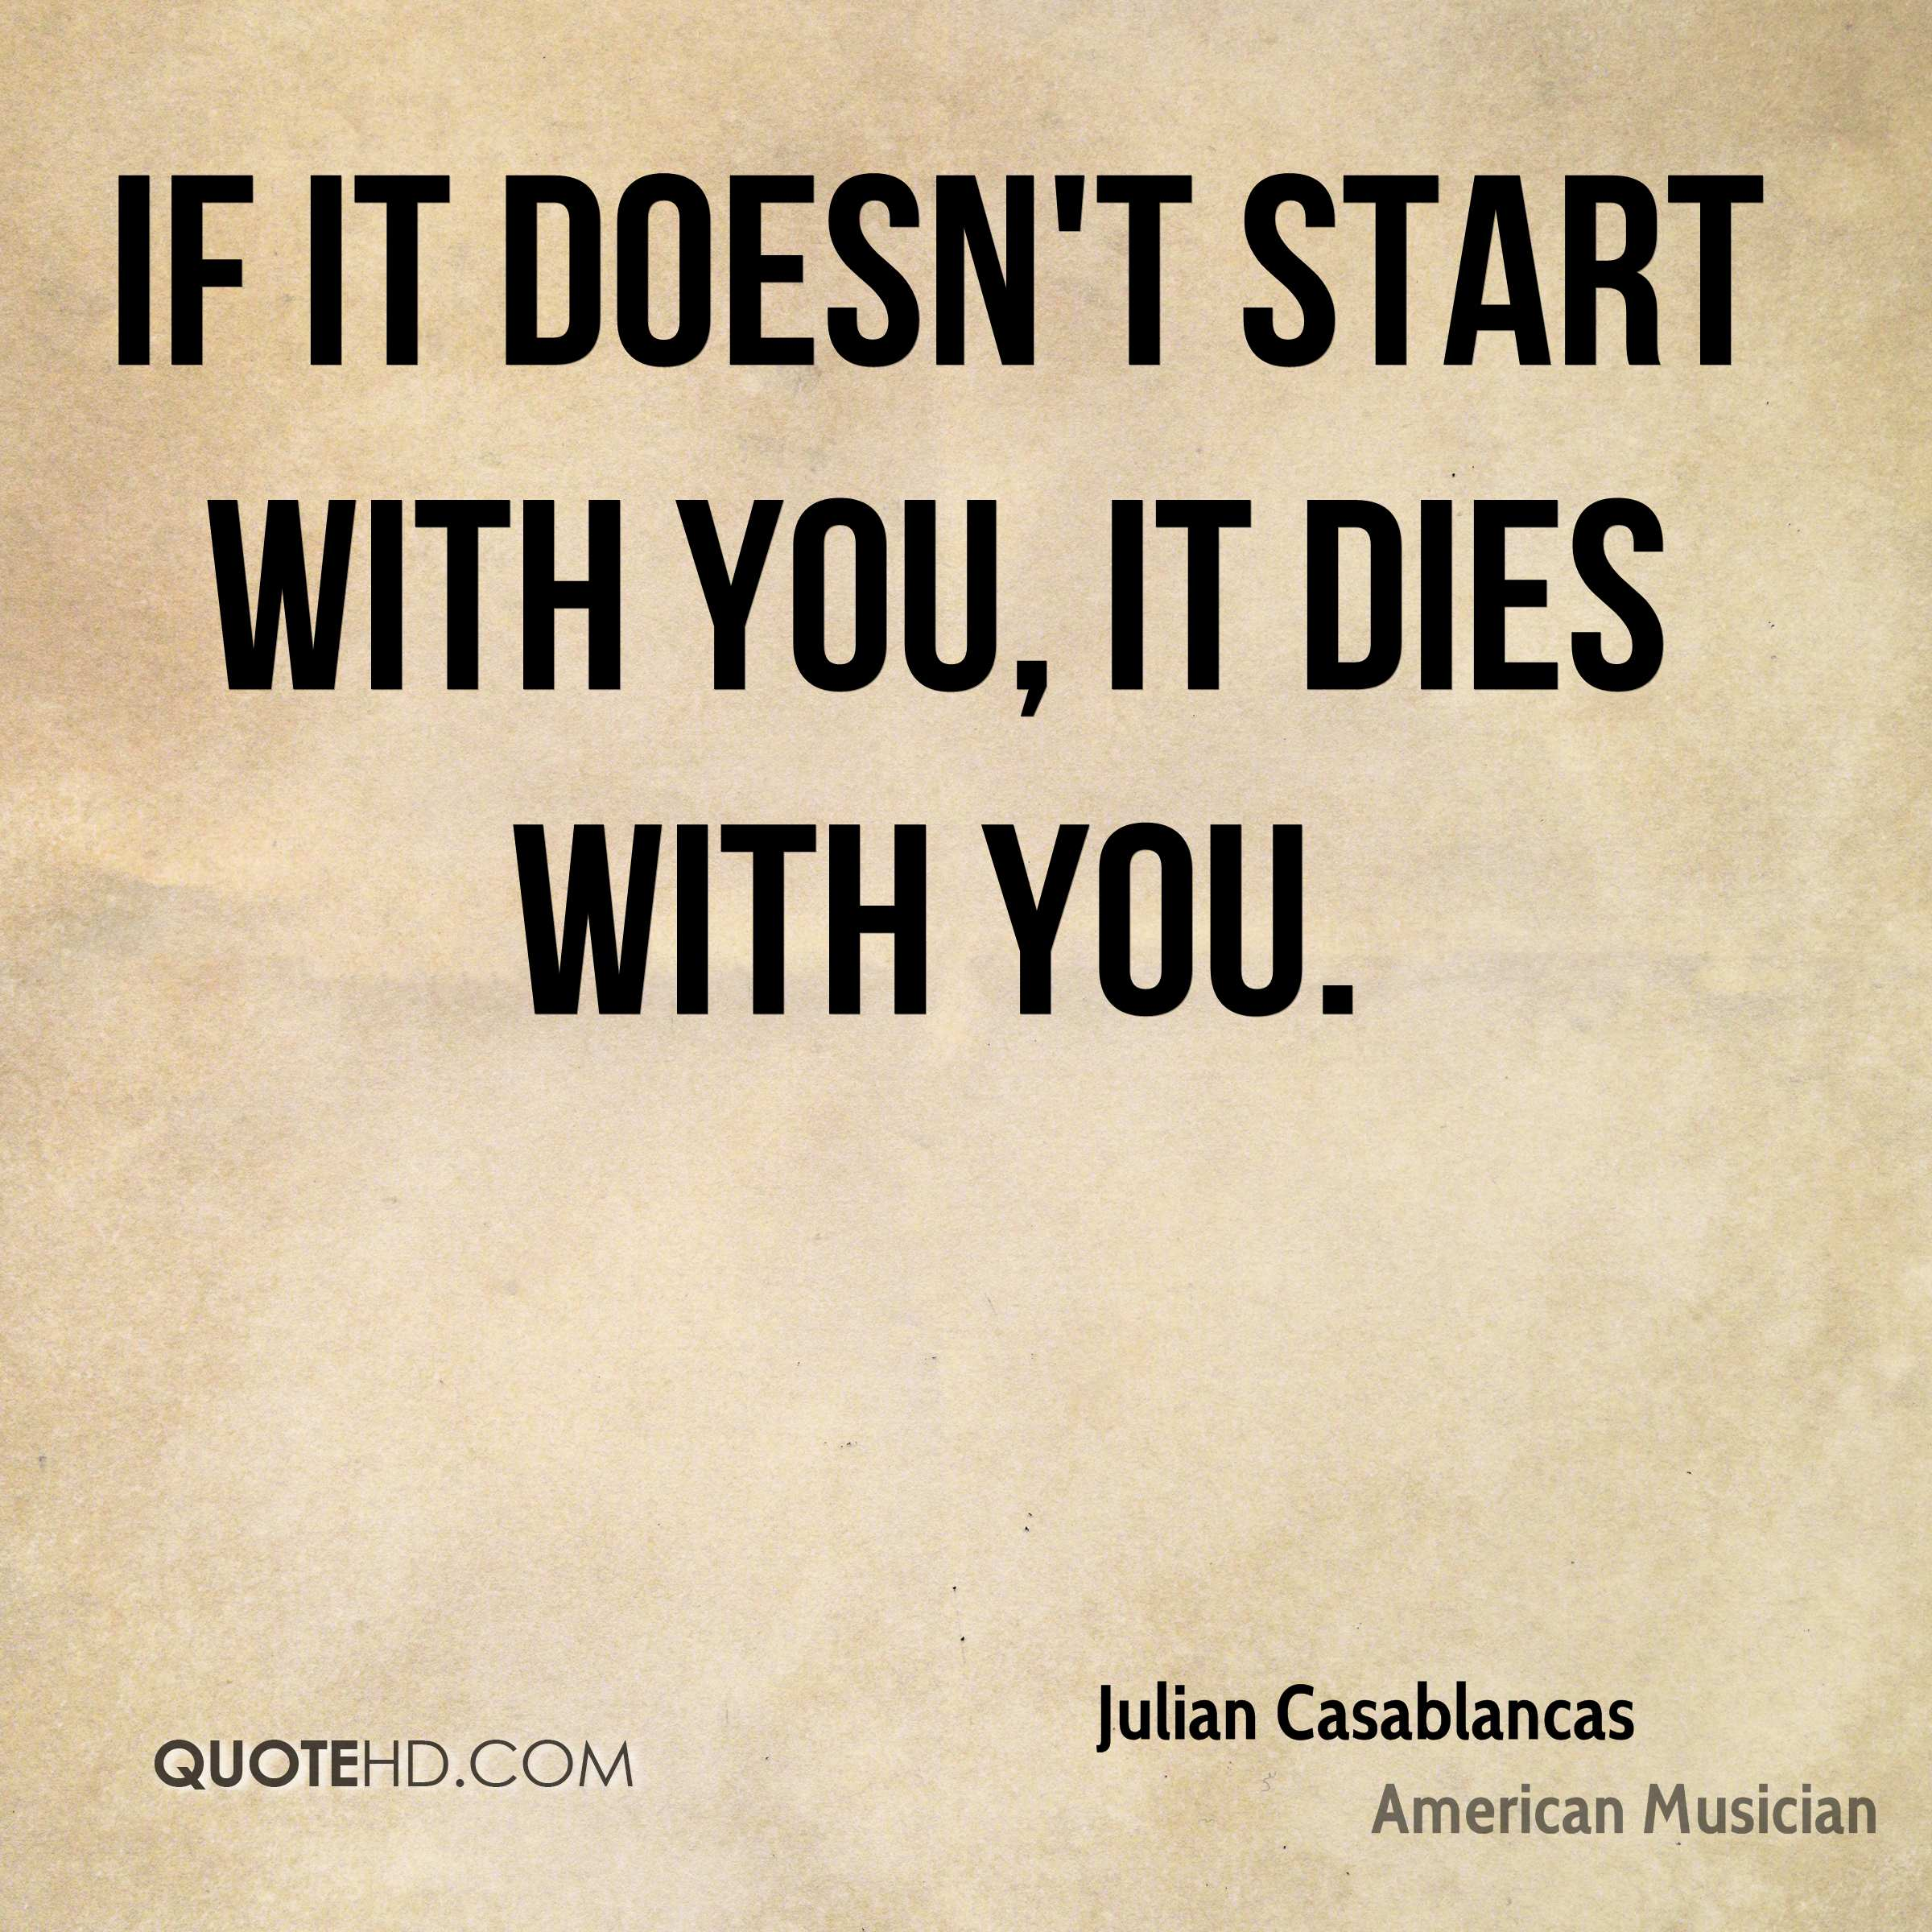 If it doesn't start with you, it dies with you.